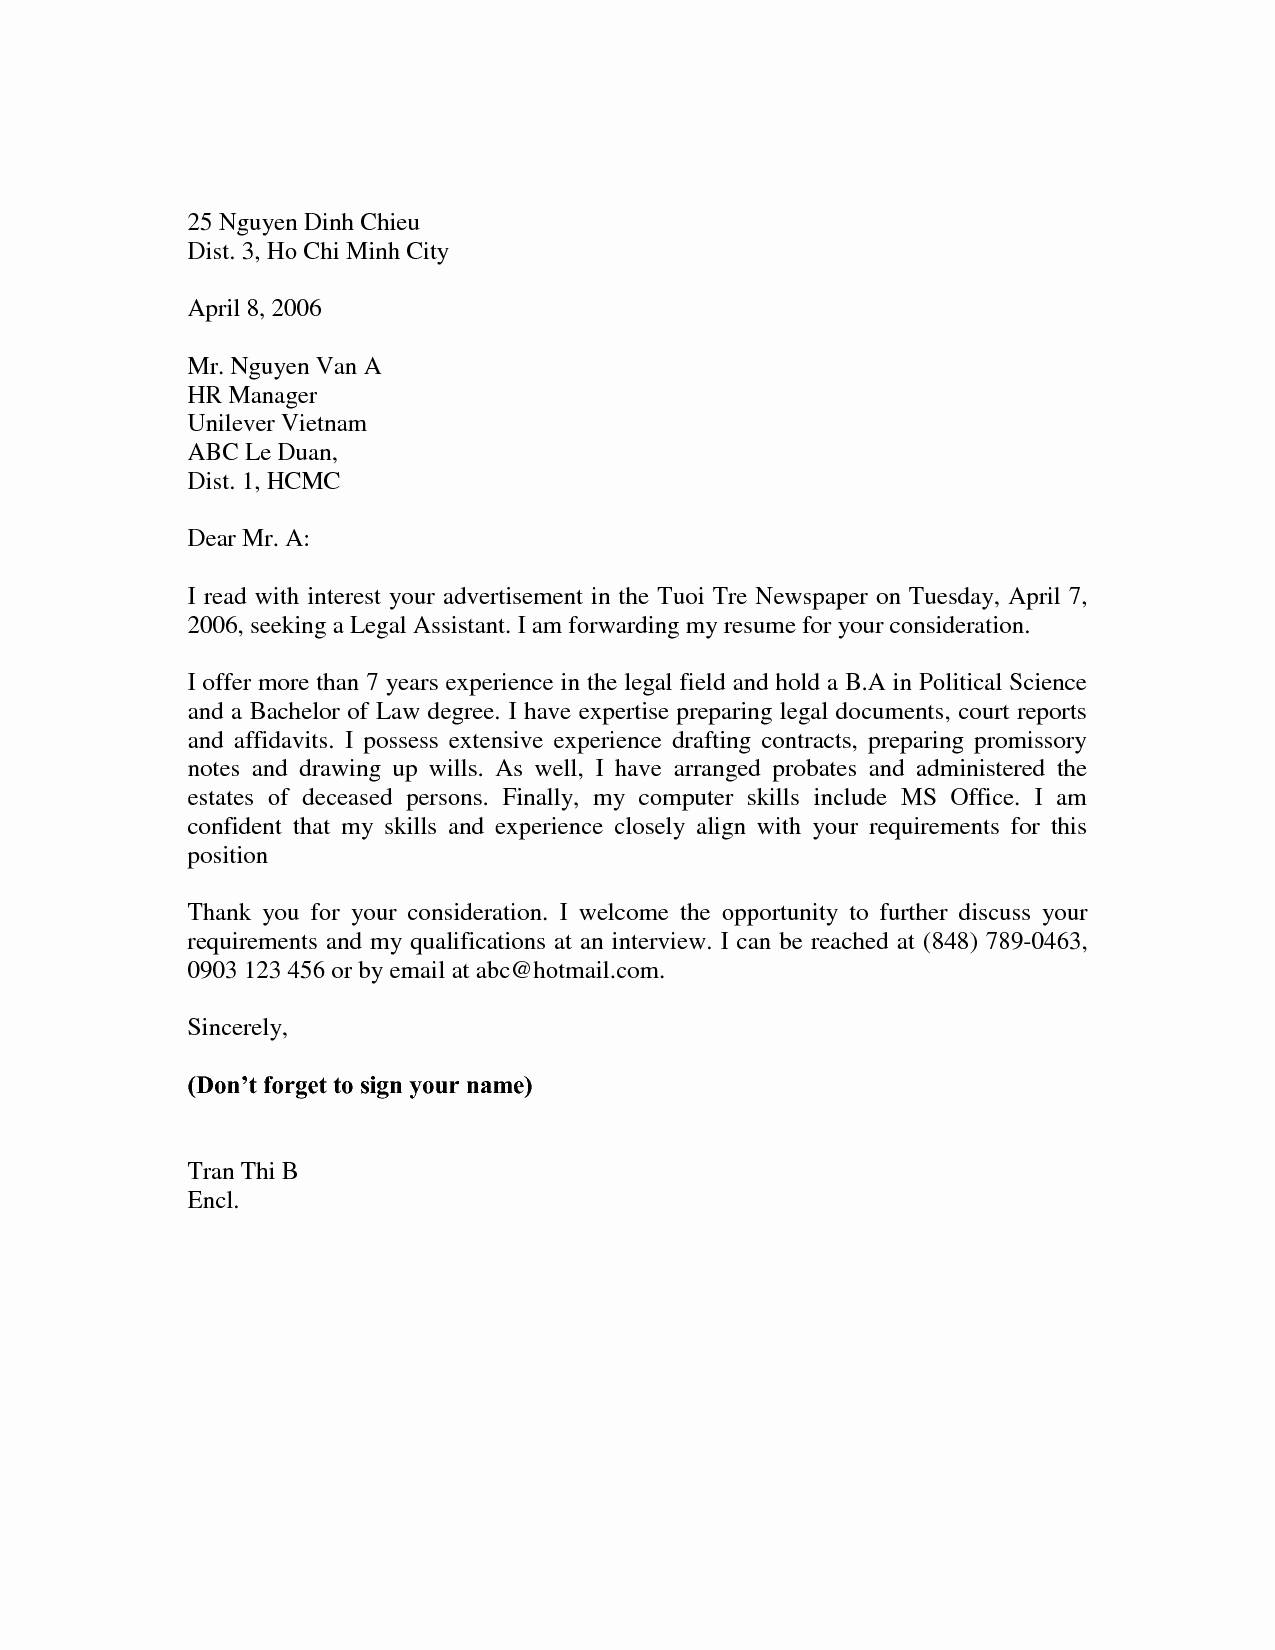 Simple Resume Cover Letter Examples Lovely Basic Cover Letter for Resume Examples